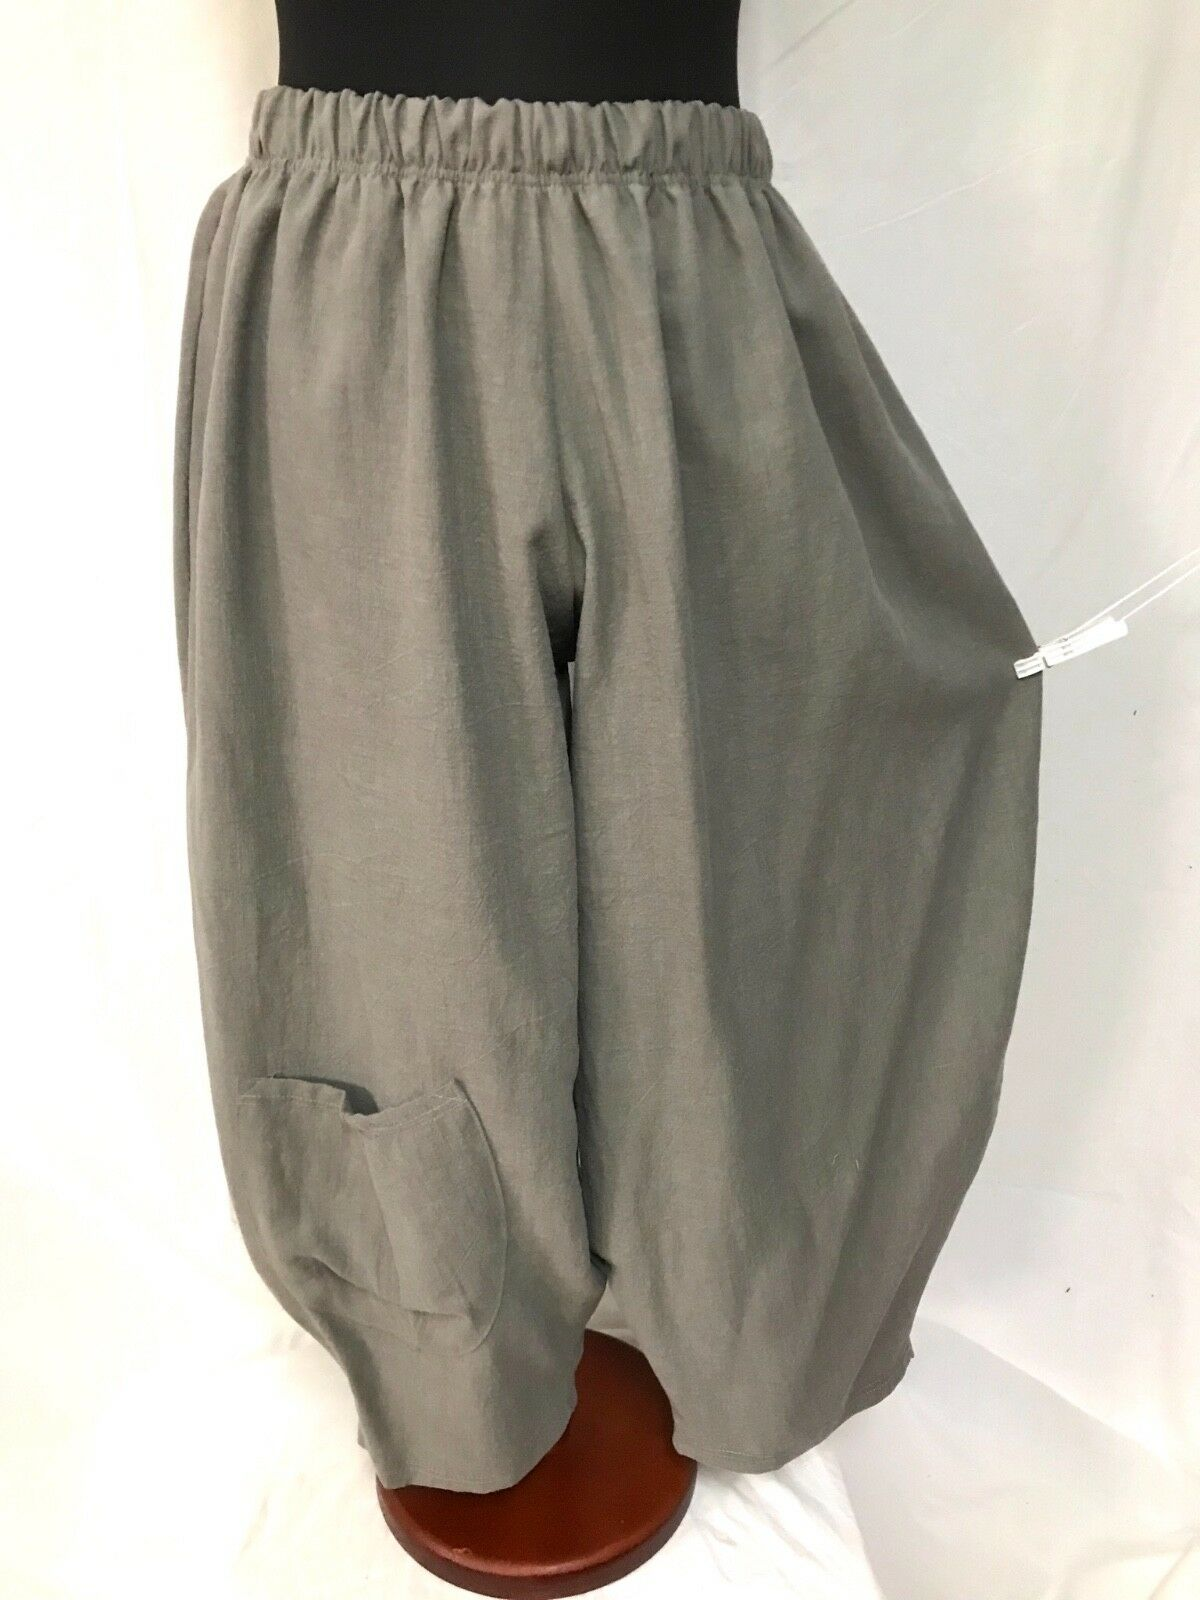 Lagenlook OverGrößed Washed Linen Balloon Trousers Bag Putty 48,50,52,54,56